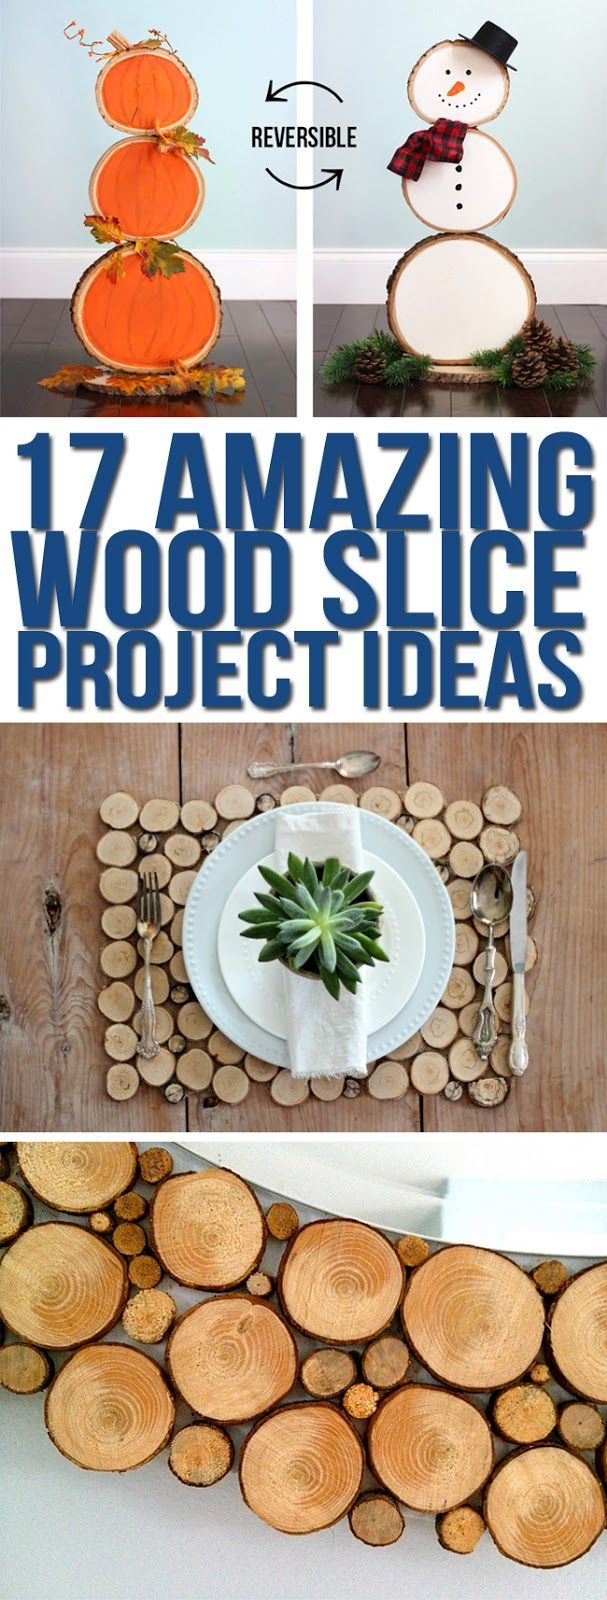 Cute wood slice project ideas. Wood slice craft ideas. Wood round projects #woodslices #wood #crafts